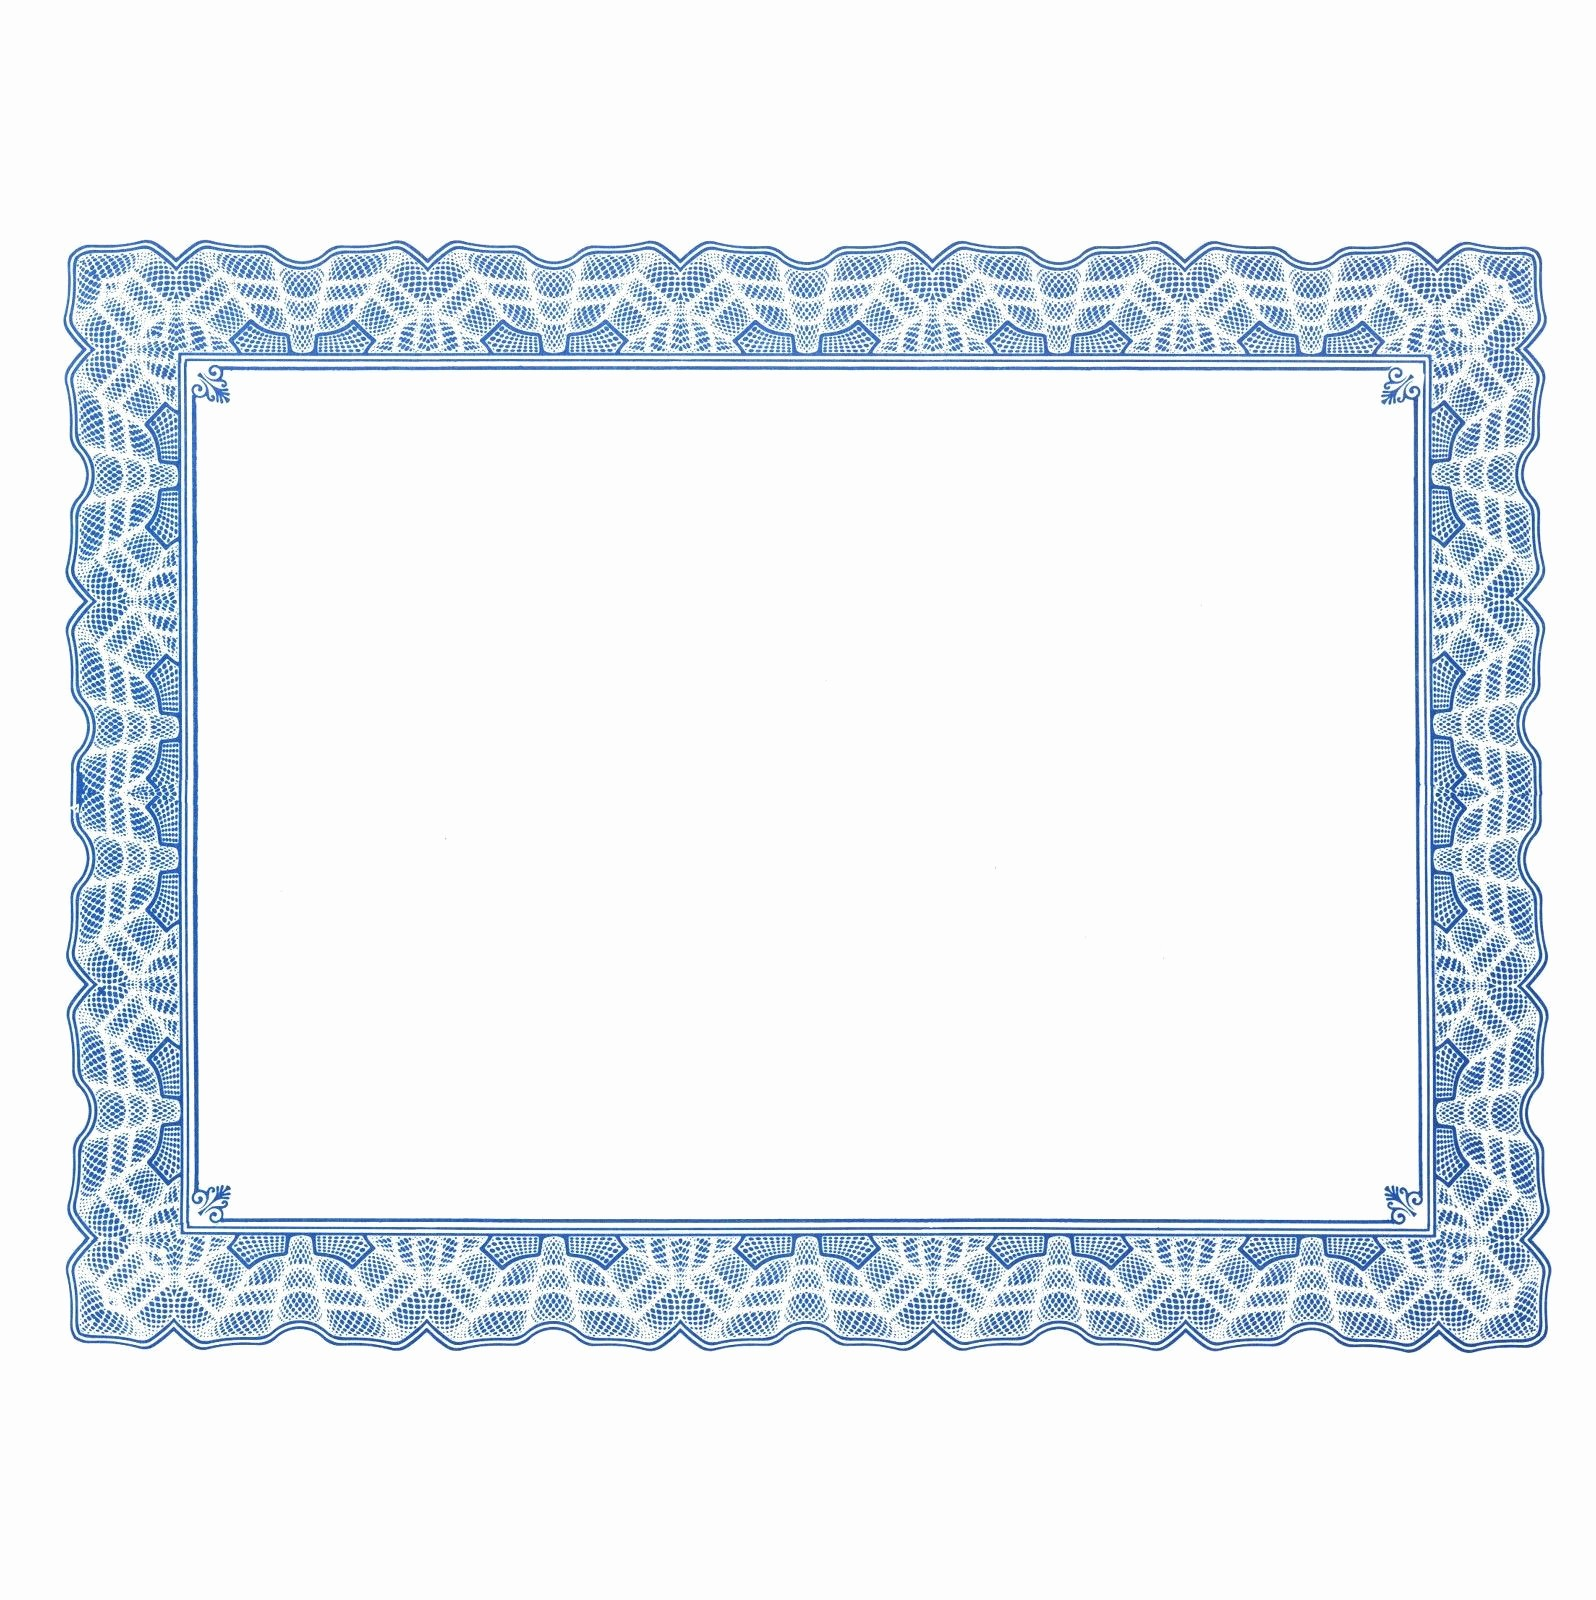 Blank Certificate Templates for Word Lovely Free Certificate Border Templates for Word